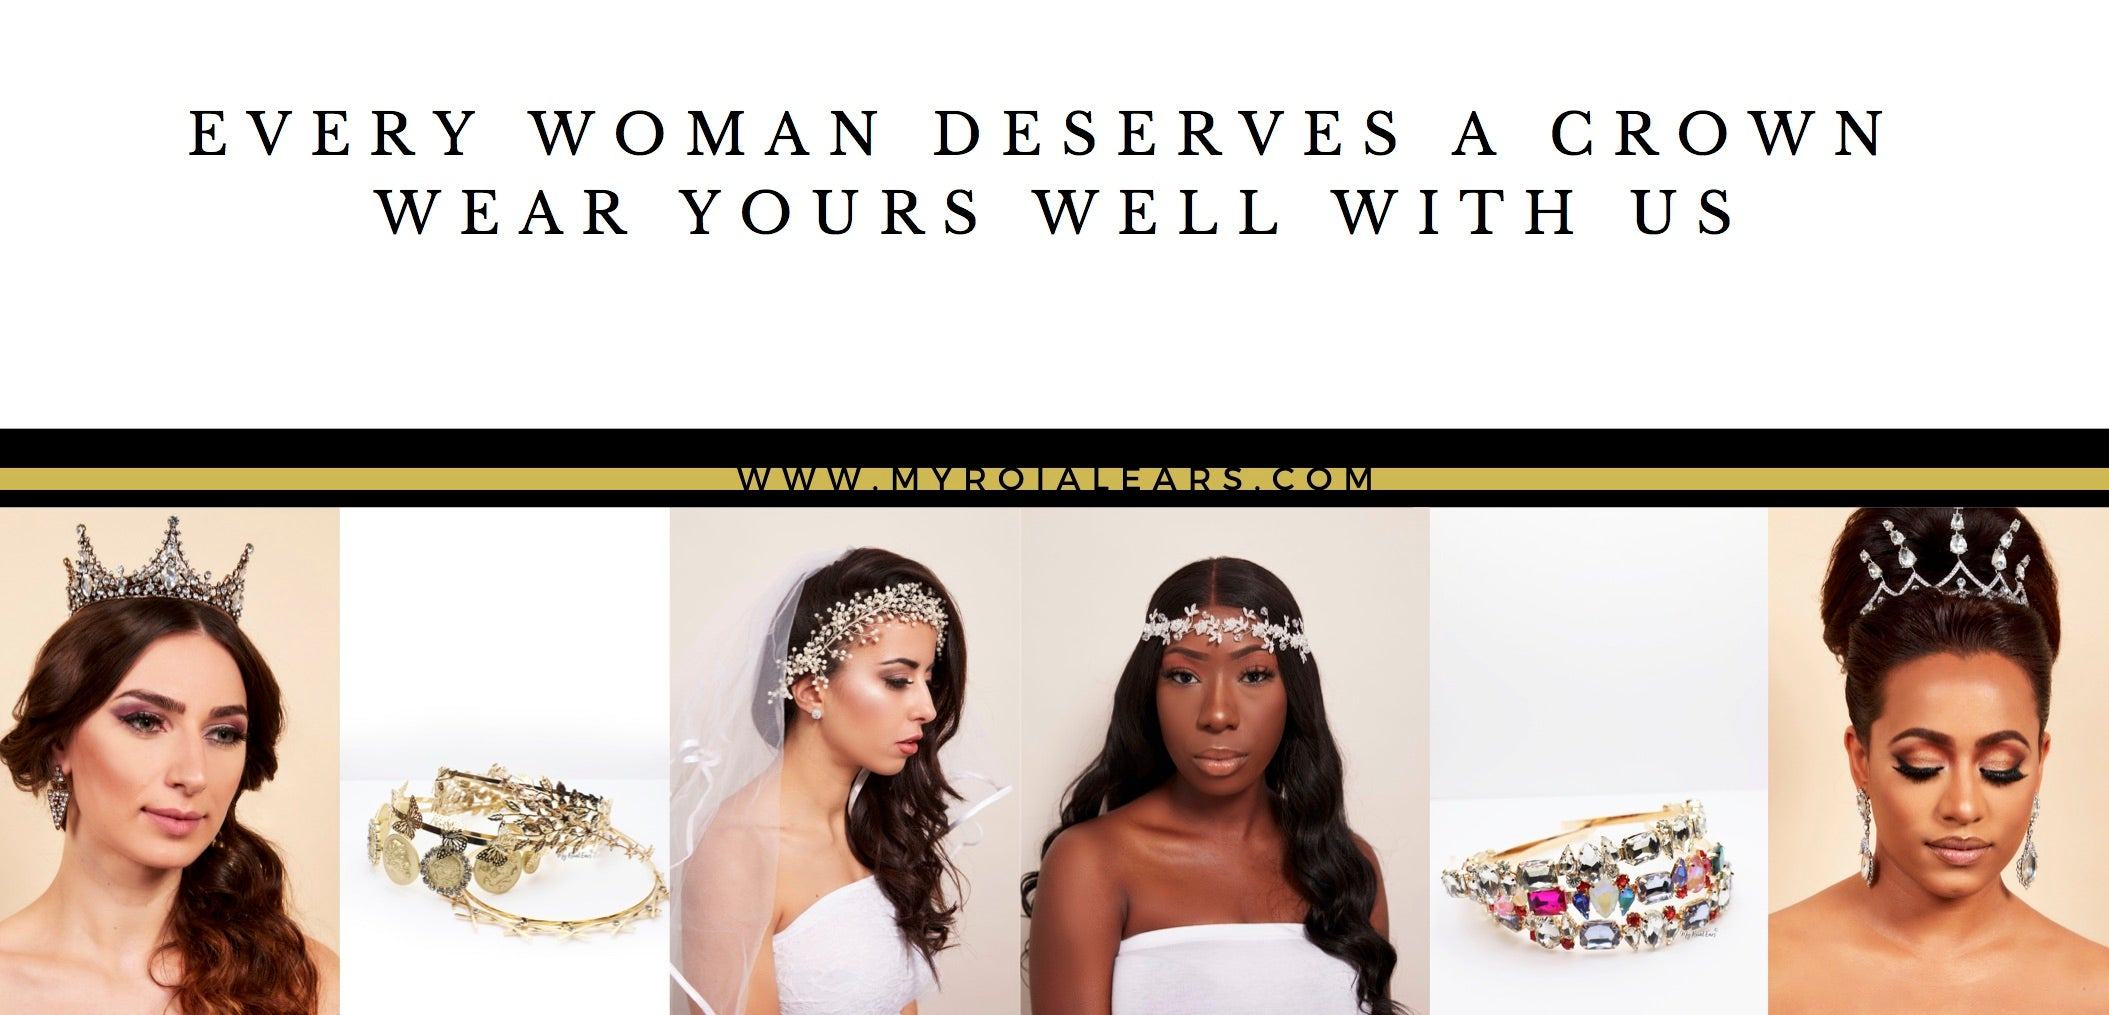 Every woman deservers a crown where yours well with us